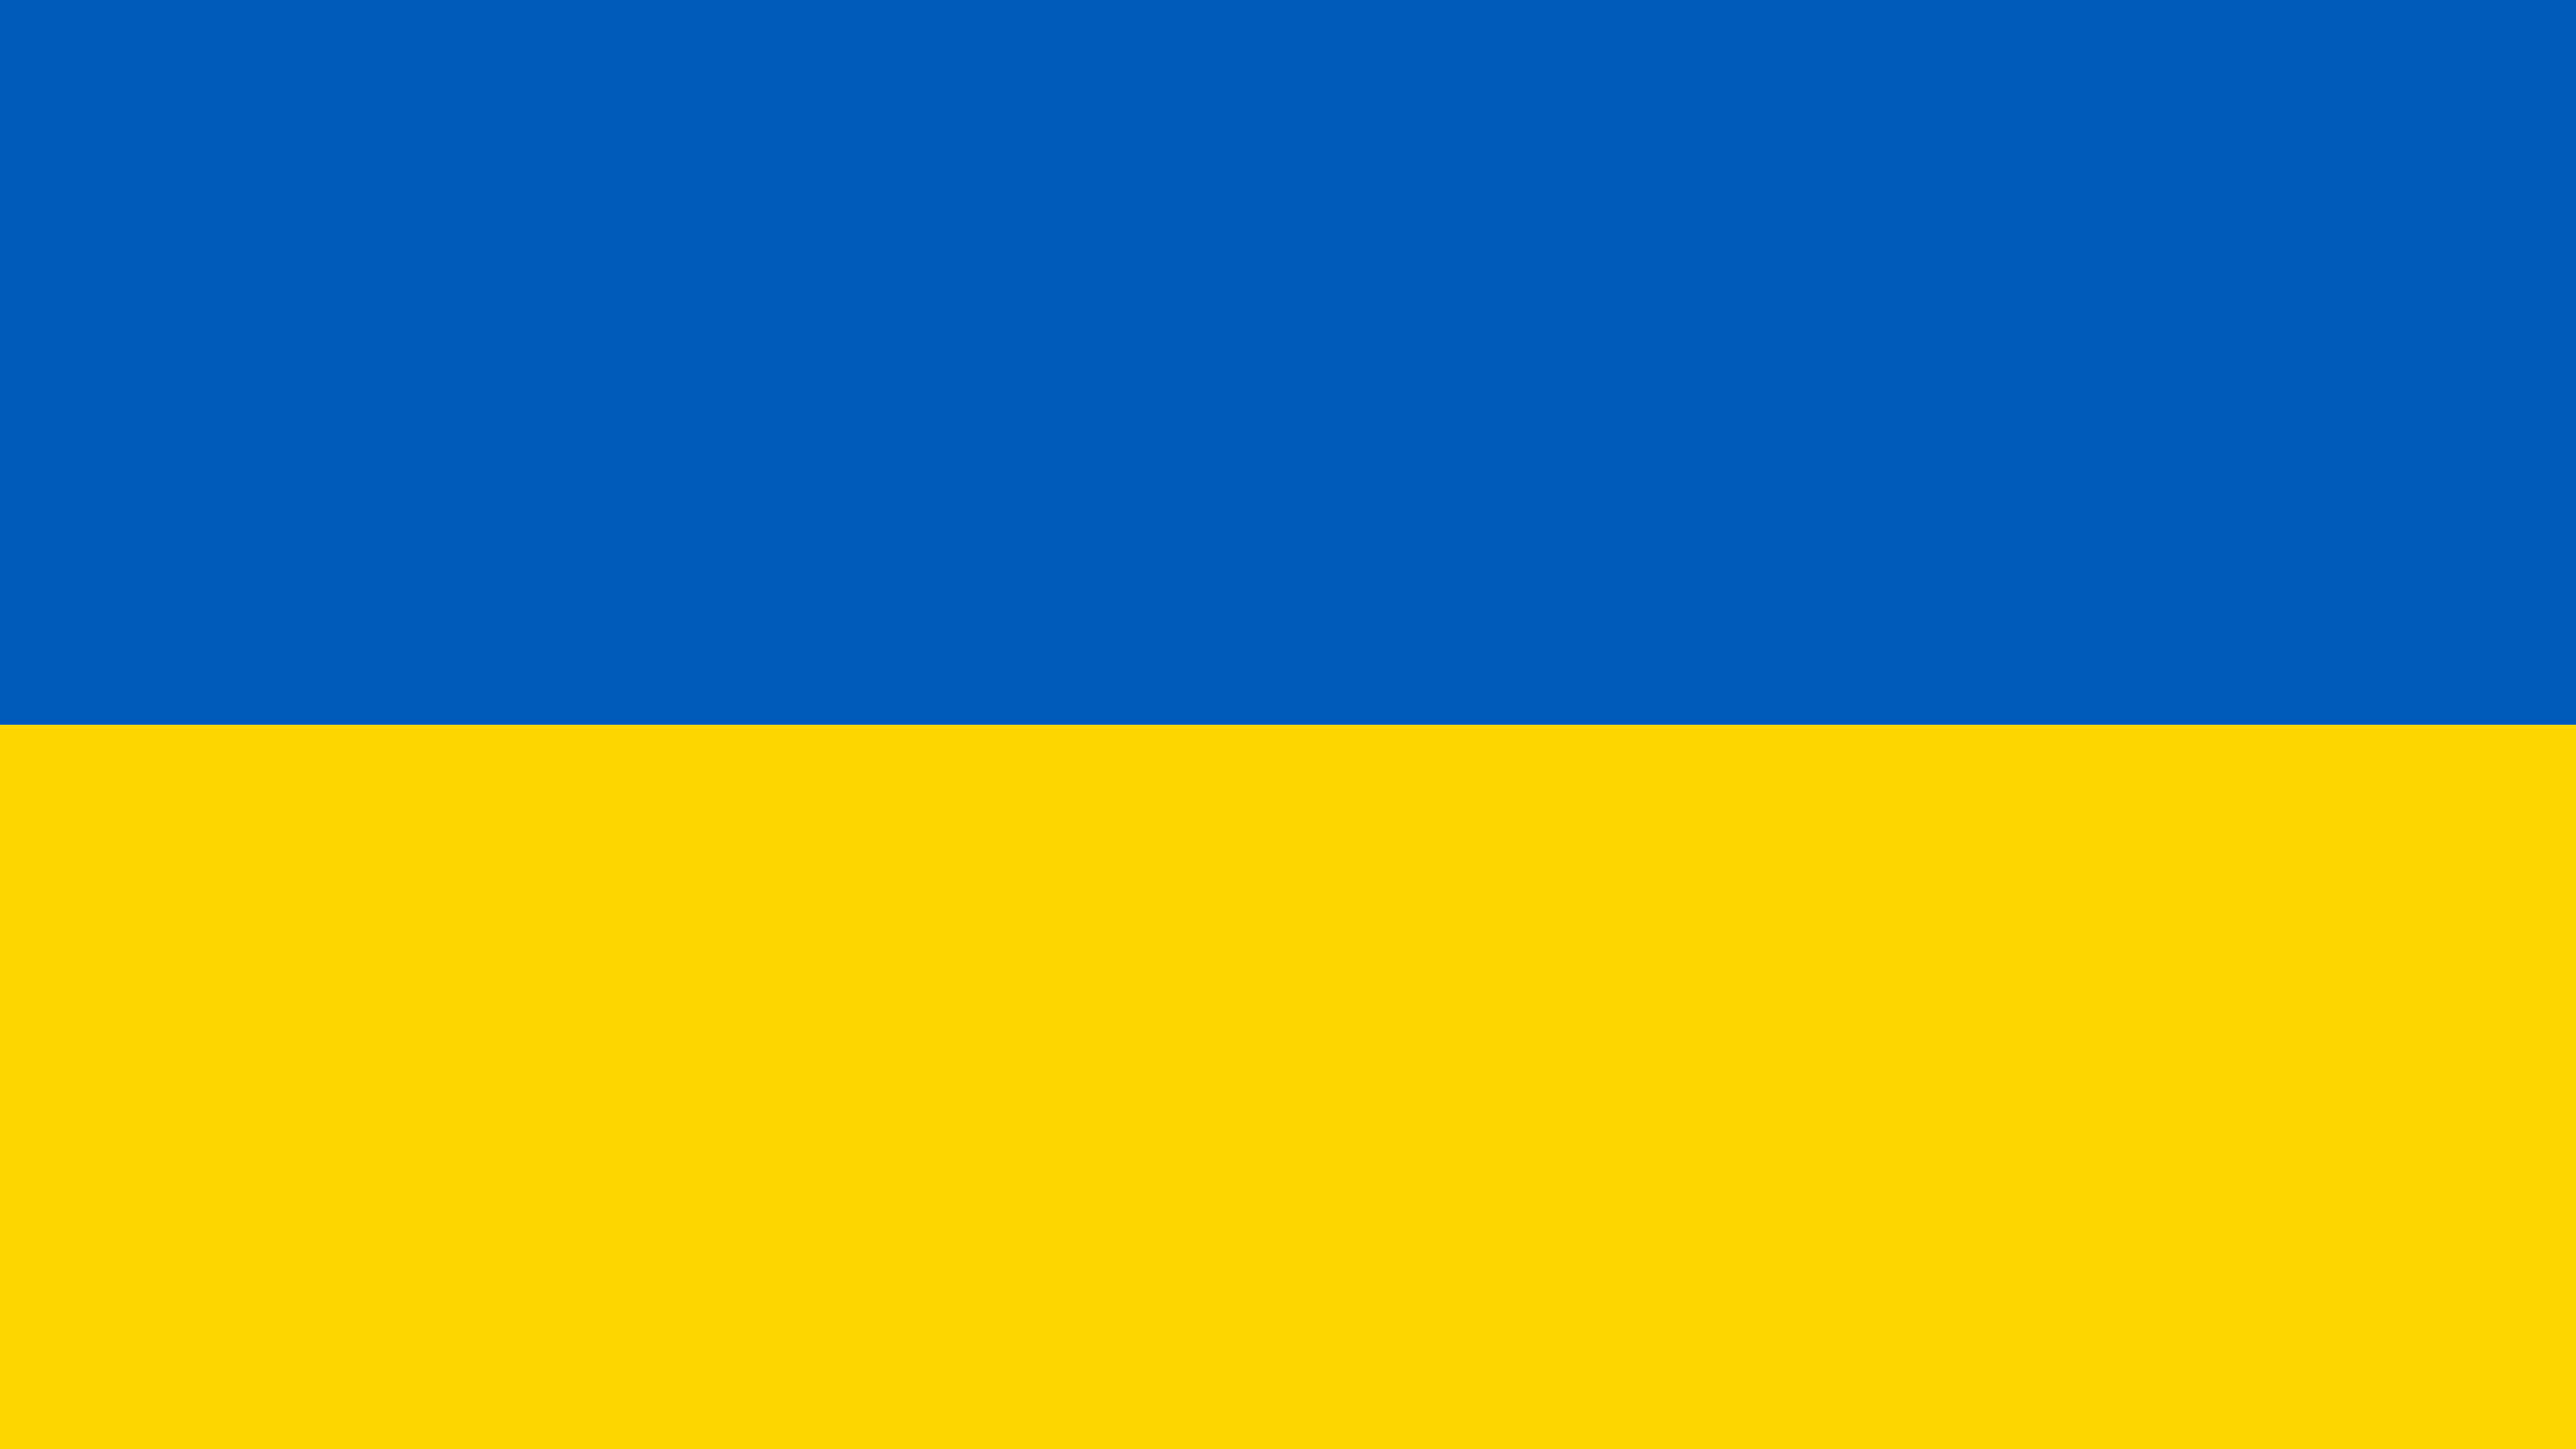 ukraine flag uhd 4k wallpaper